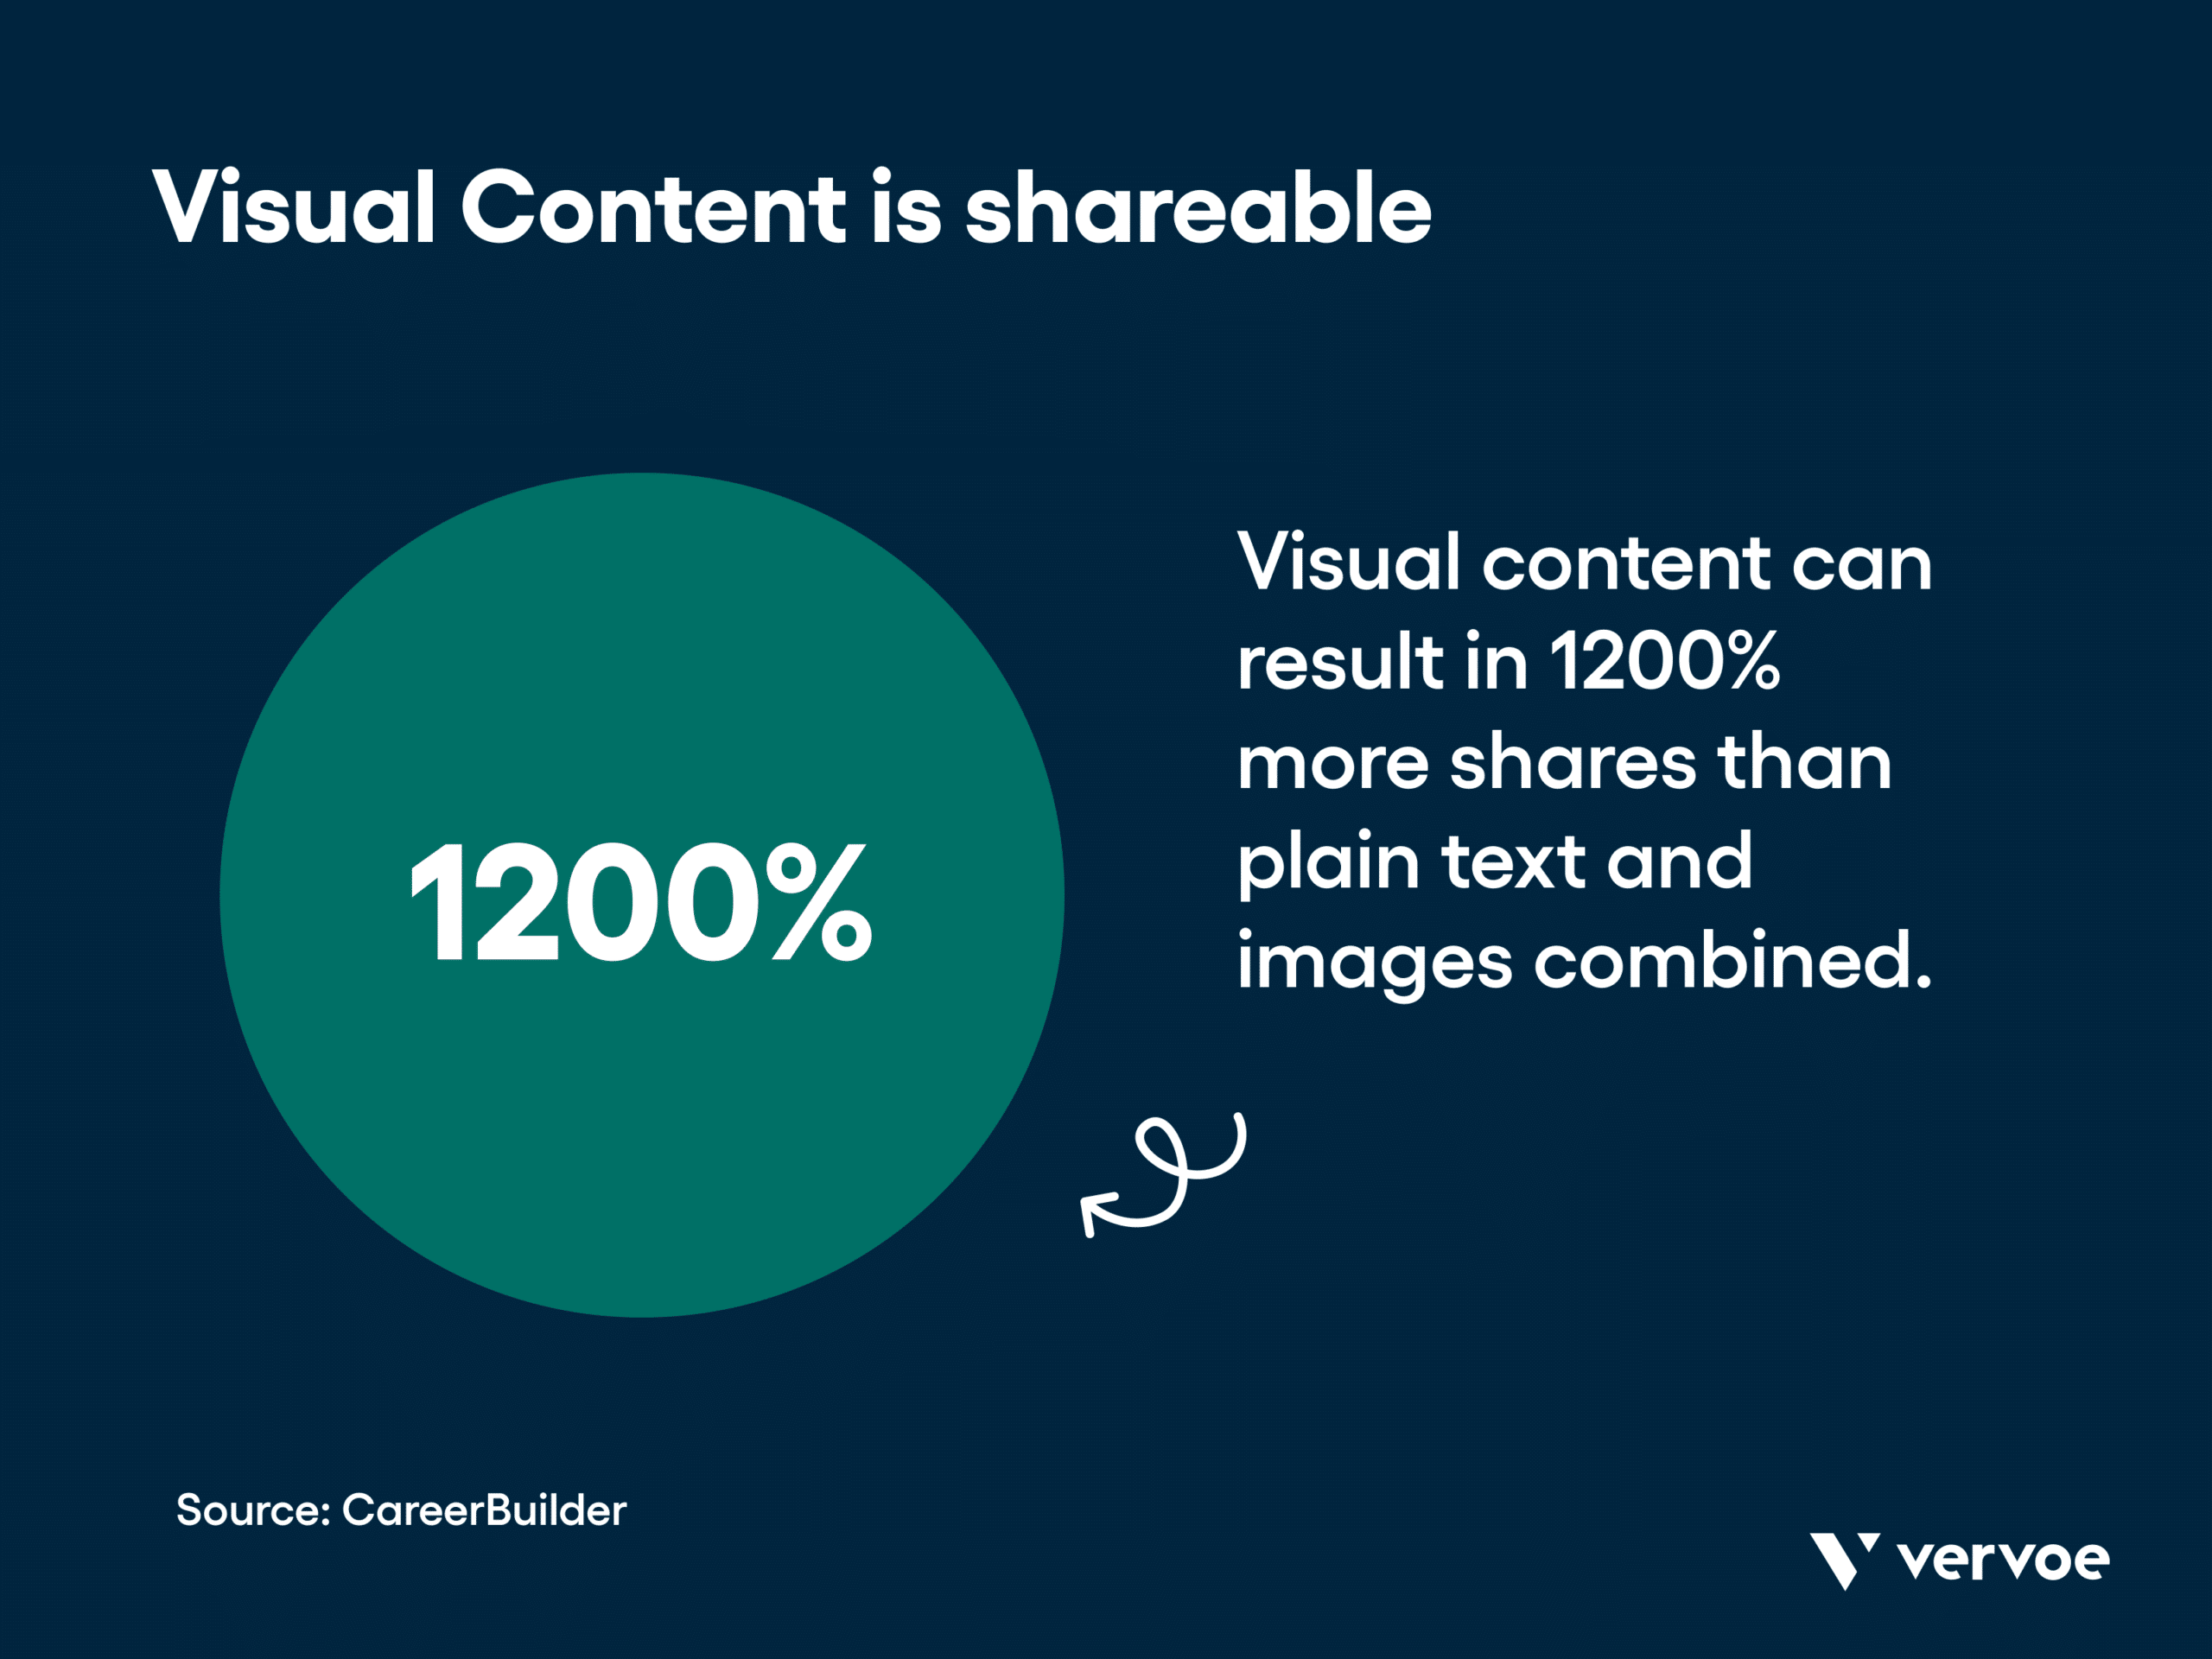 Infographic showing visual content can result in 1200% more shares than plan text and images combined